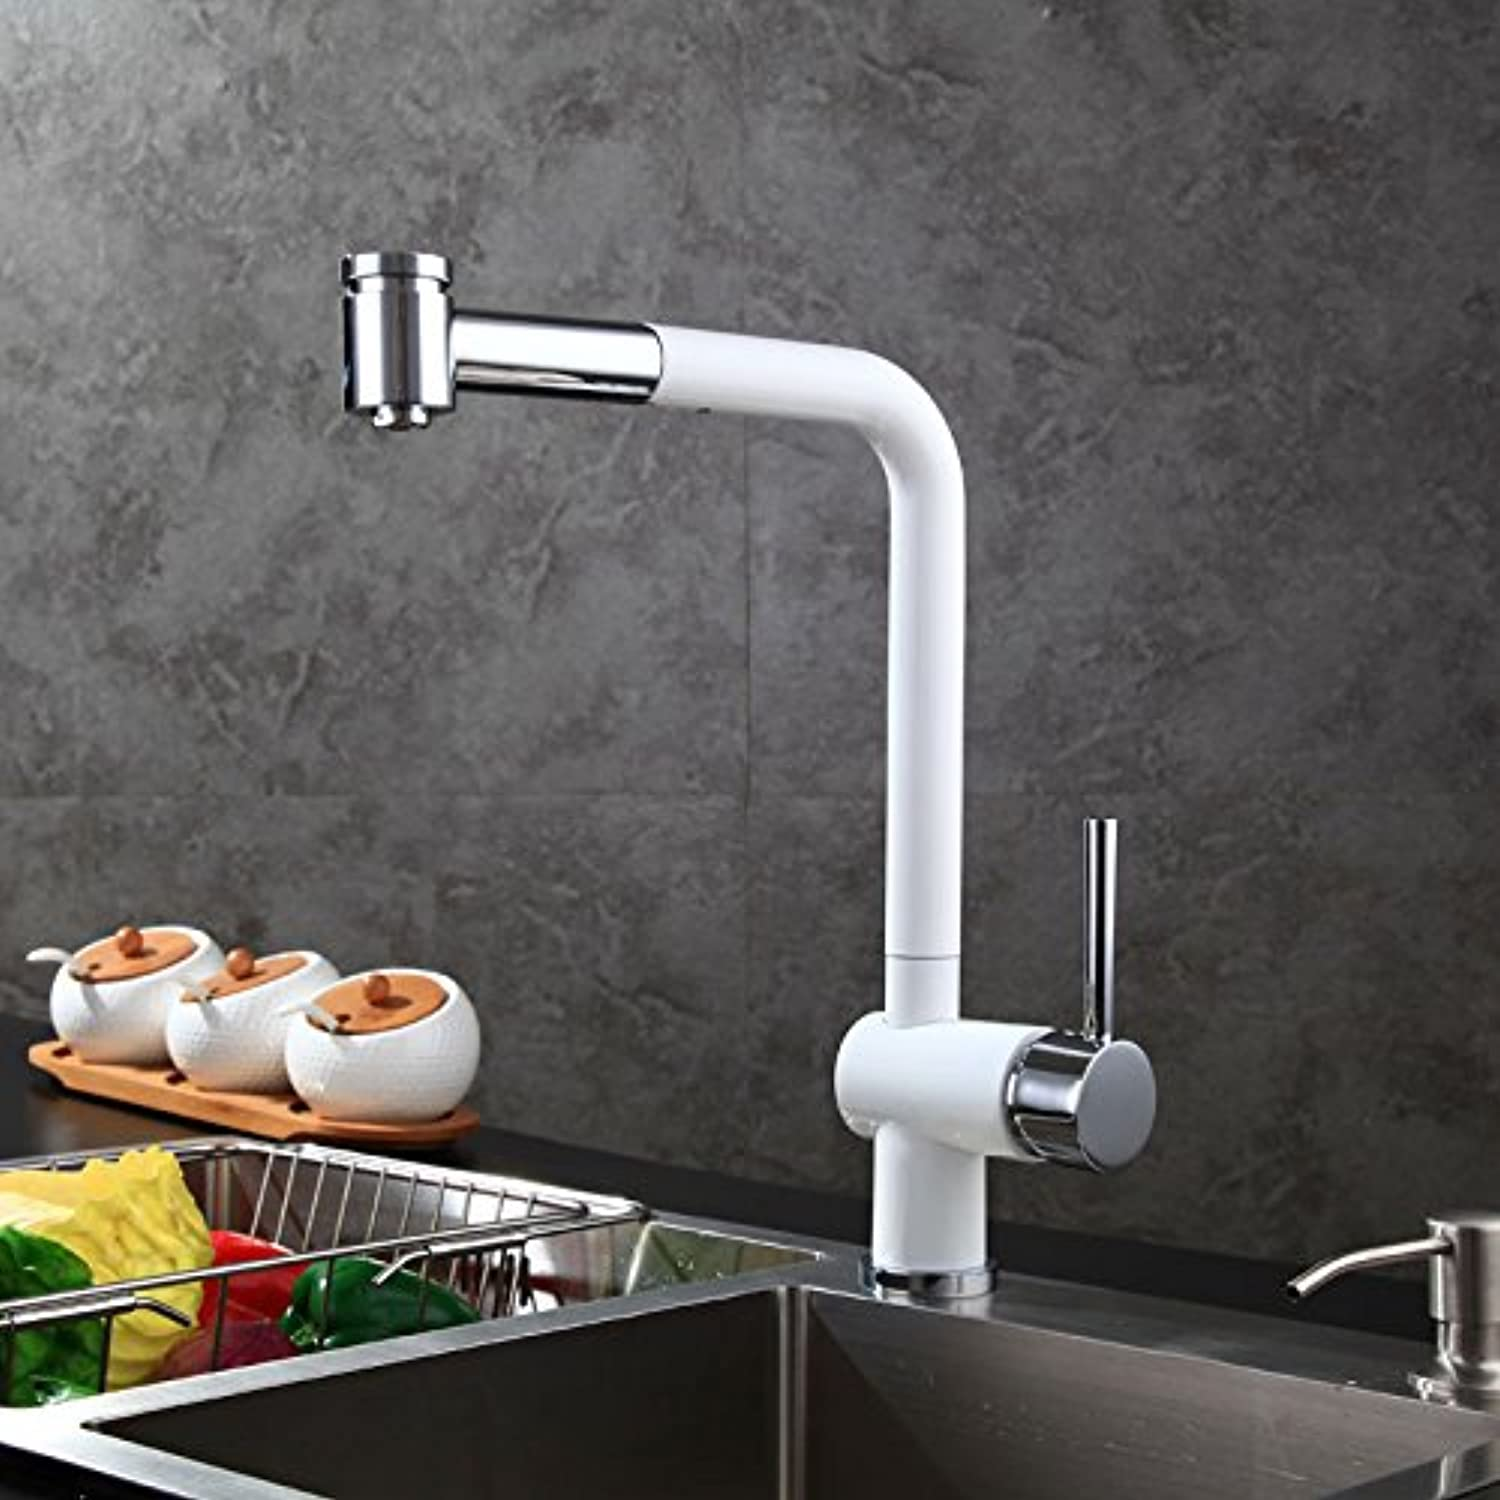 Groeshane Kitchen Sink, Dish Basin, Telescopic Faucet, Shower Faucet, Hot And Cold Copper,White